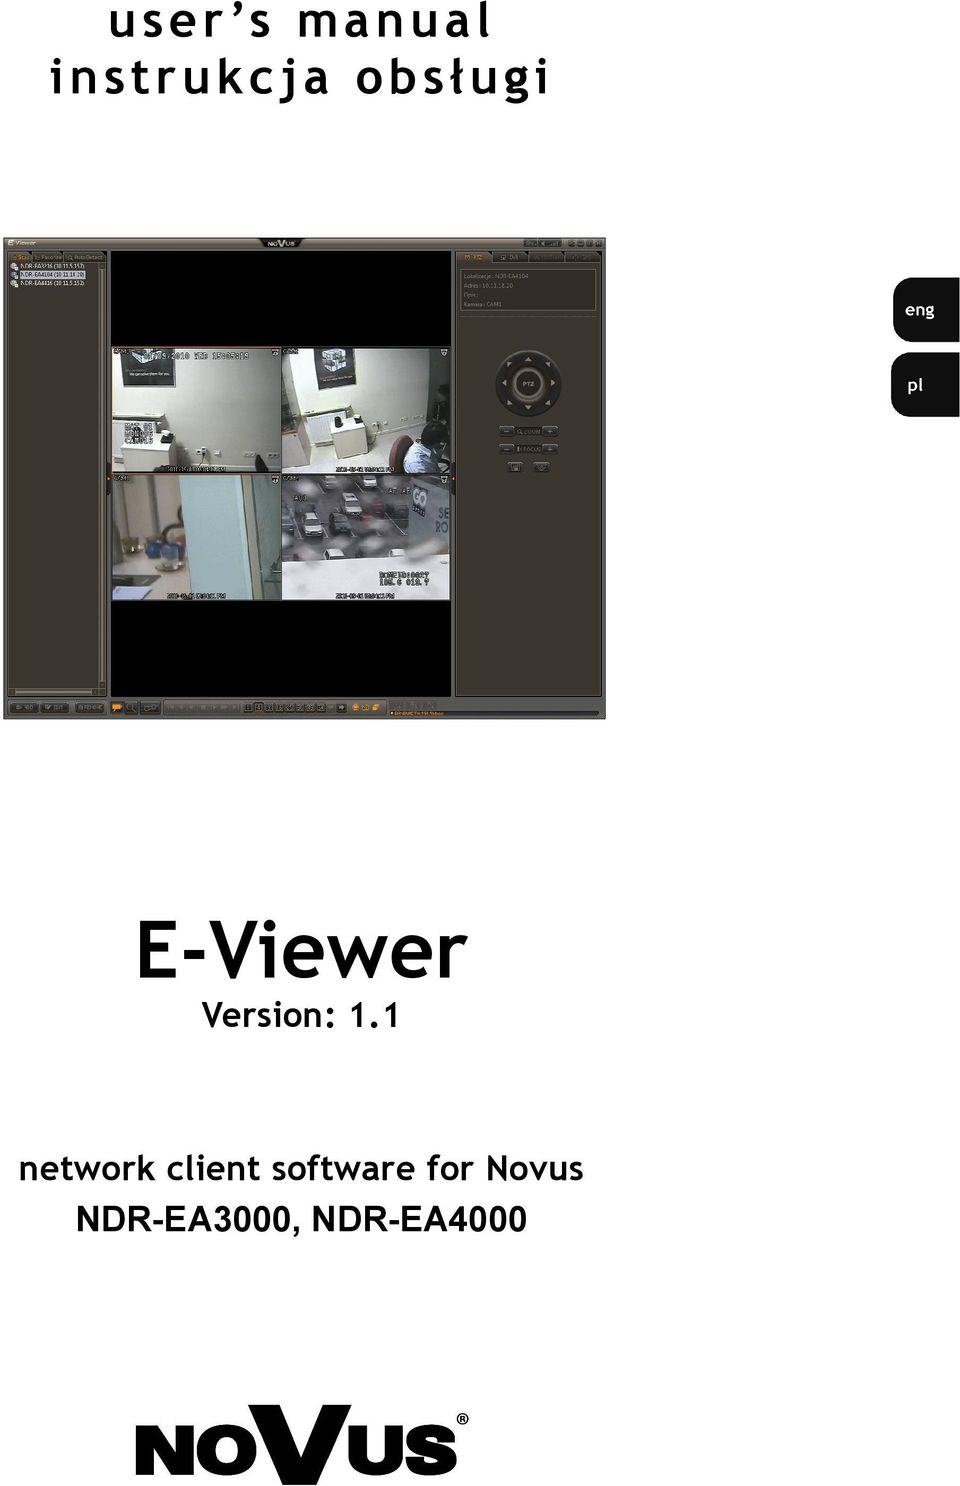 1 network client software